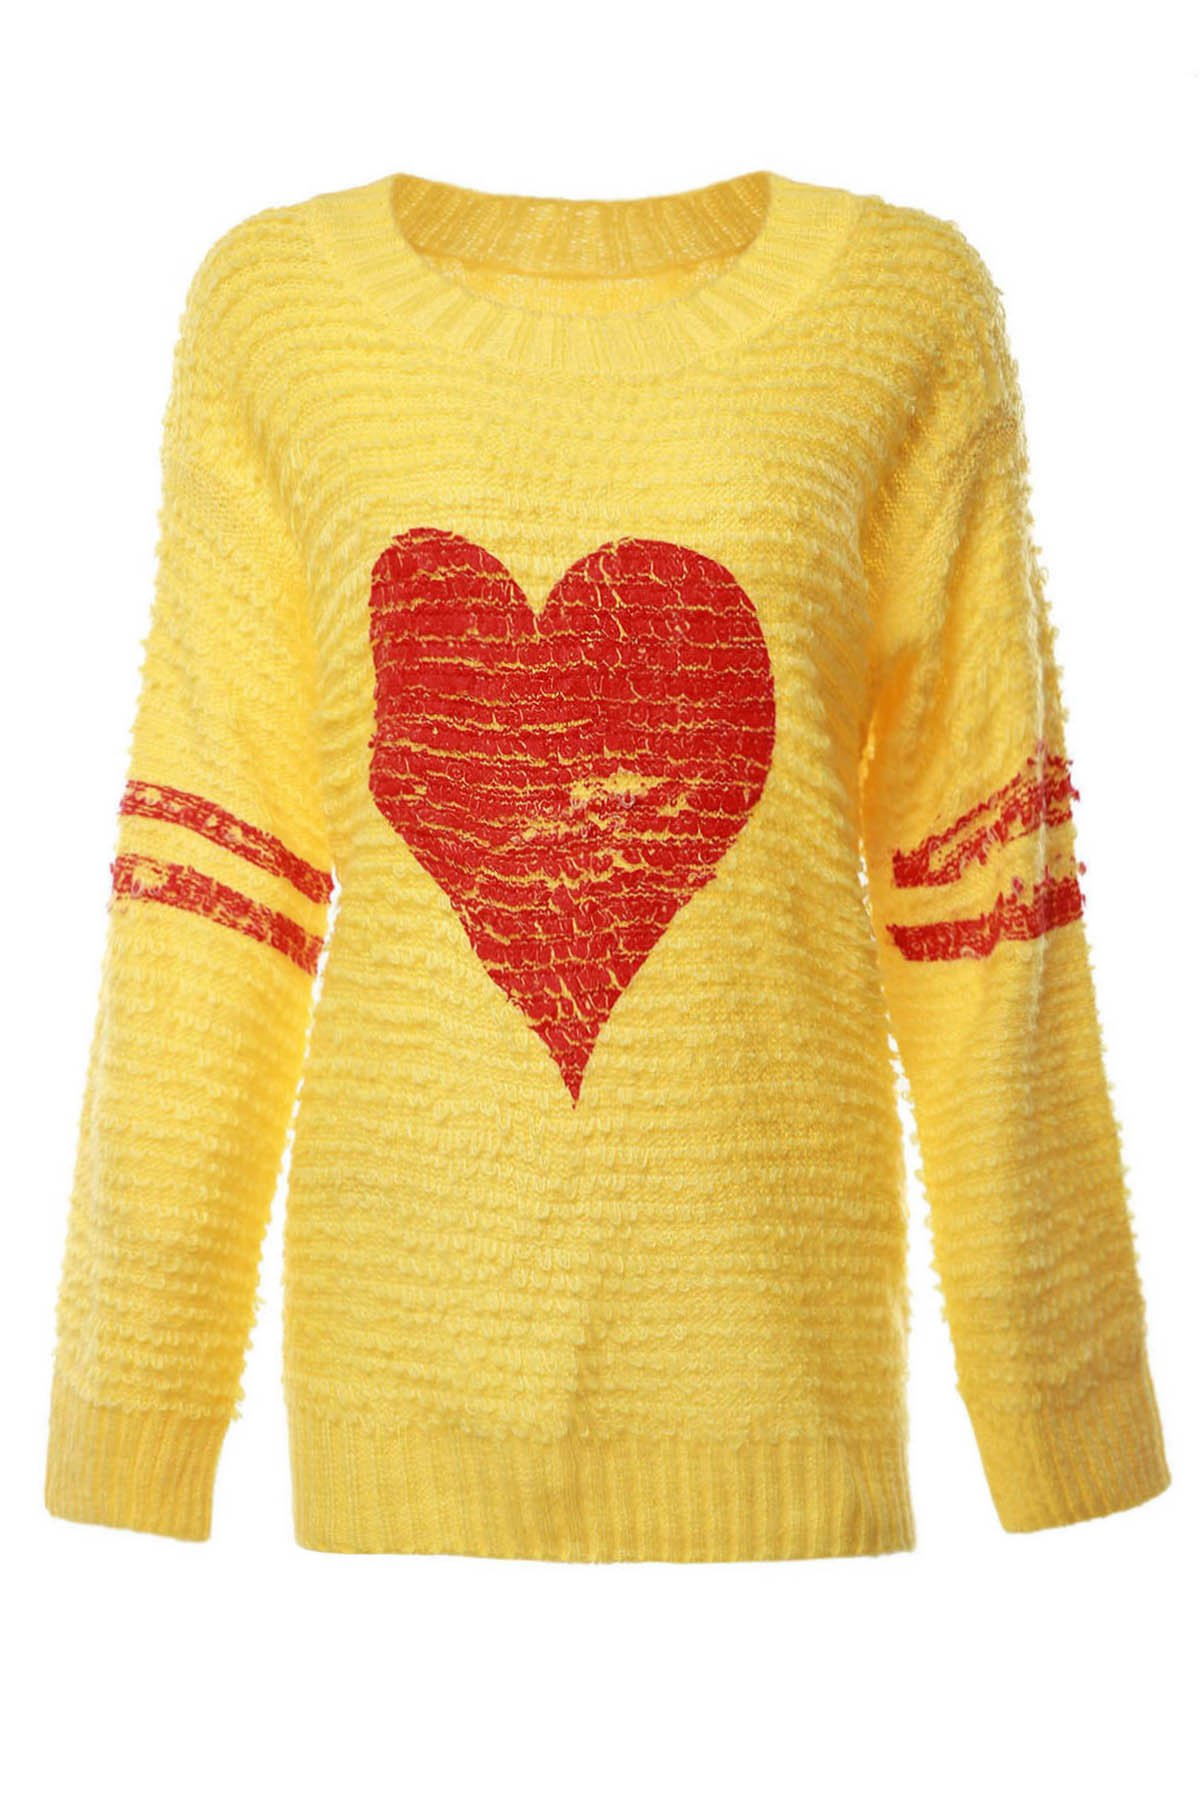 Heart Pattern Long Sleeve Jumper - YELLOW ONE SIZE(FIT SIZE XS TO M)